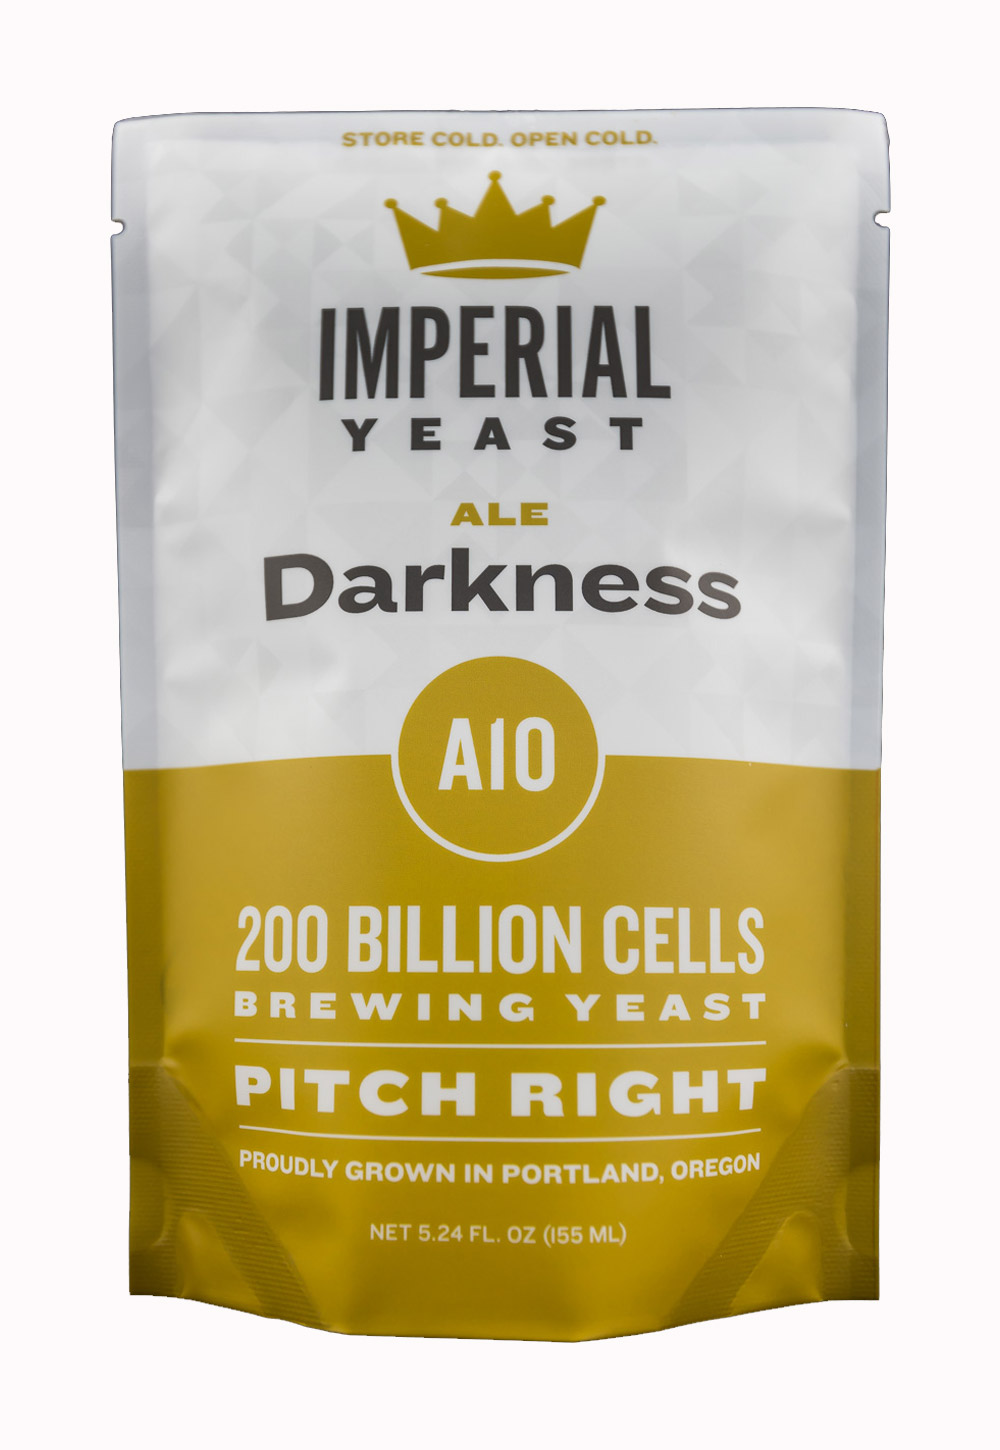 23404 imperial yeast a10 darkness ale yeast